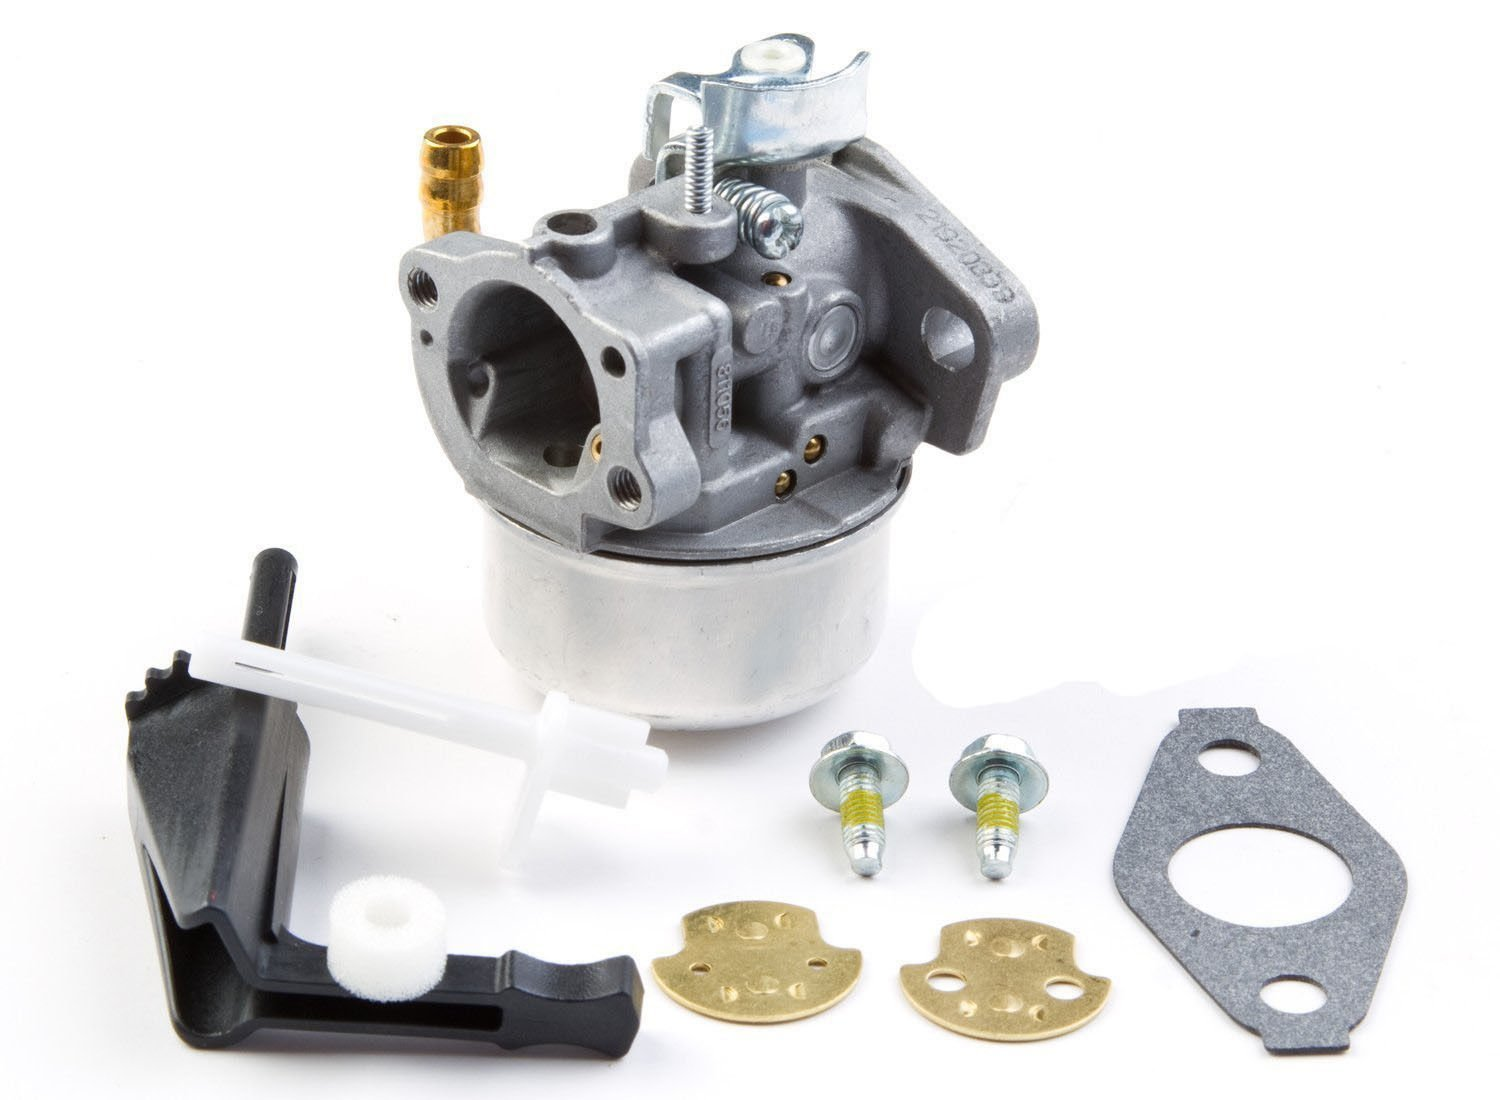 Replacement Carburetor for Briggs & Stratton 798653,697354,790290,791077,698860